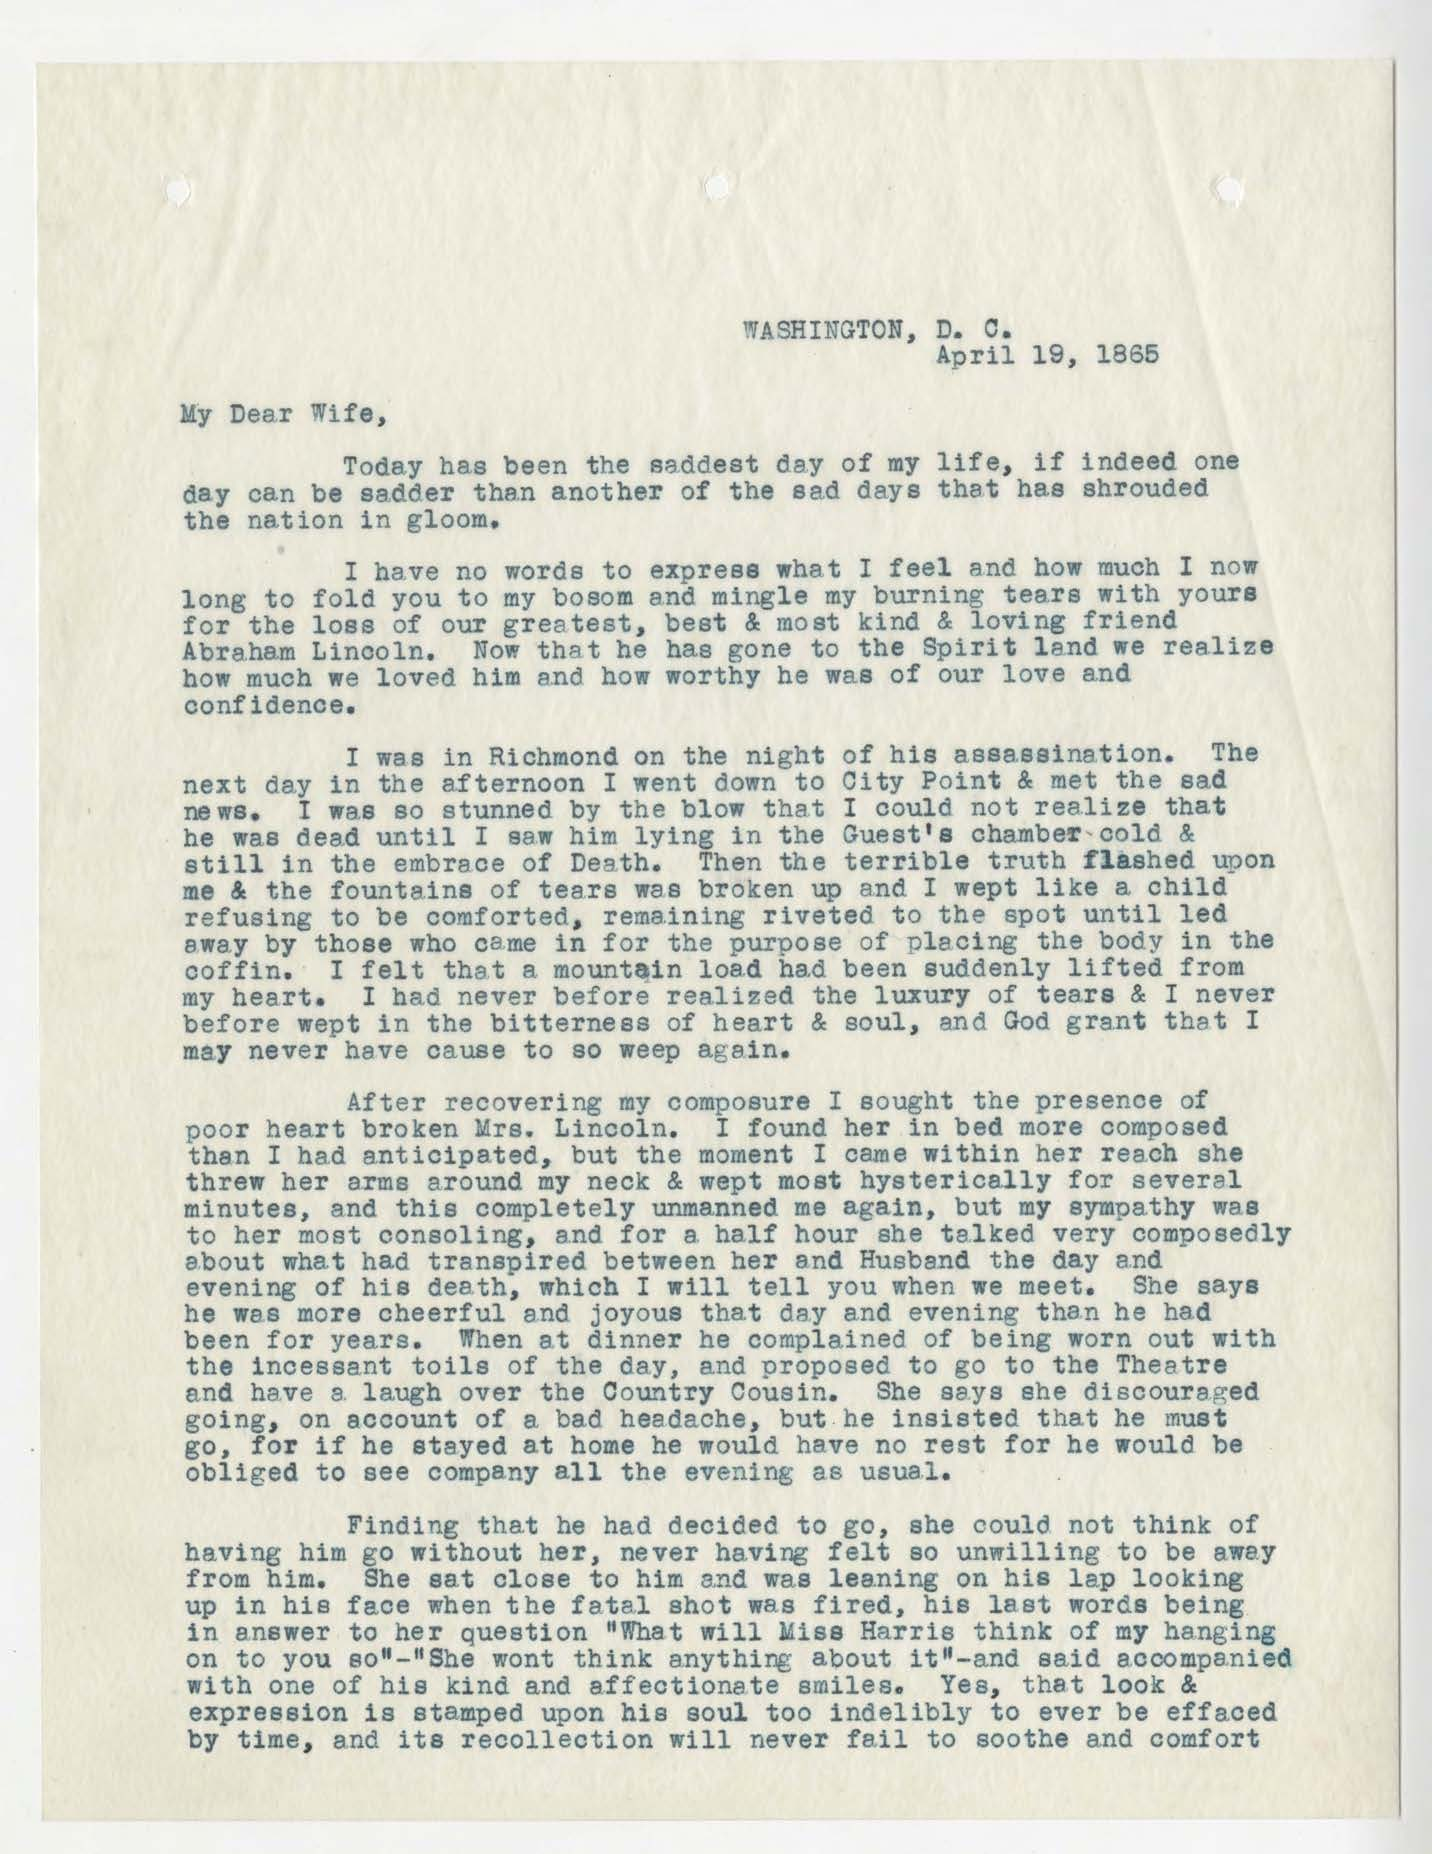 A Letter from Dr. Anson G. Henry to his wife